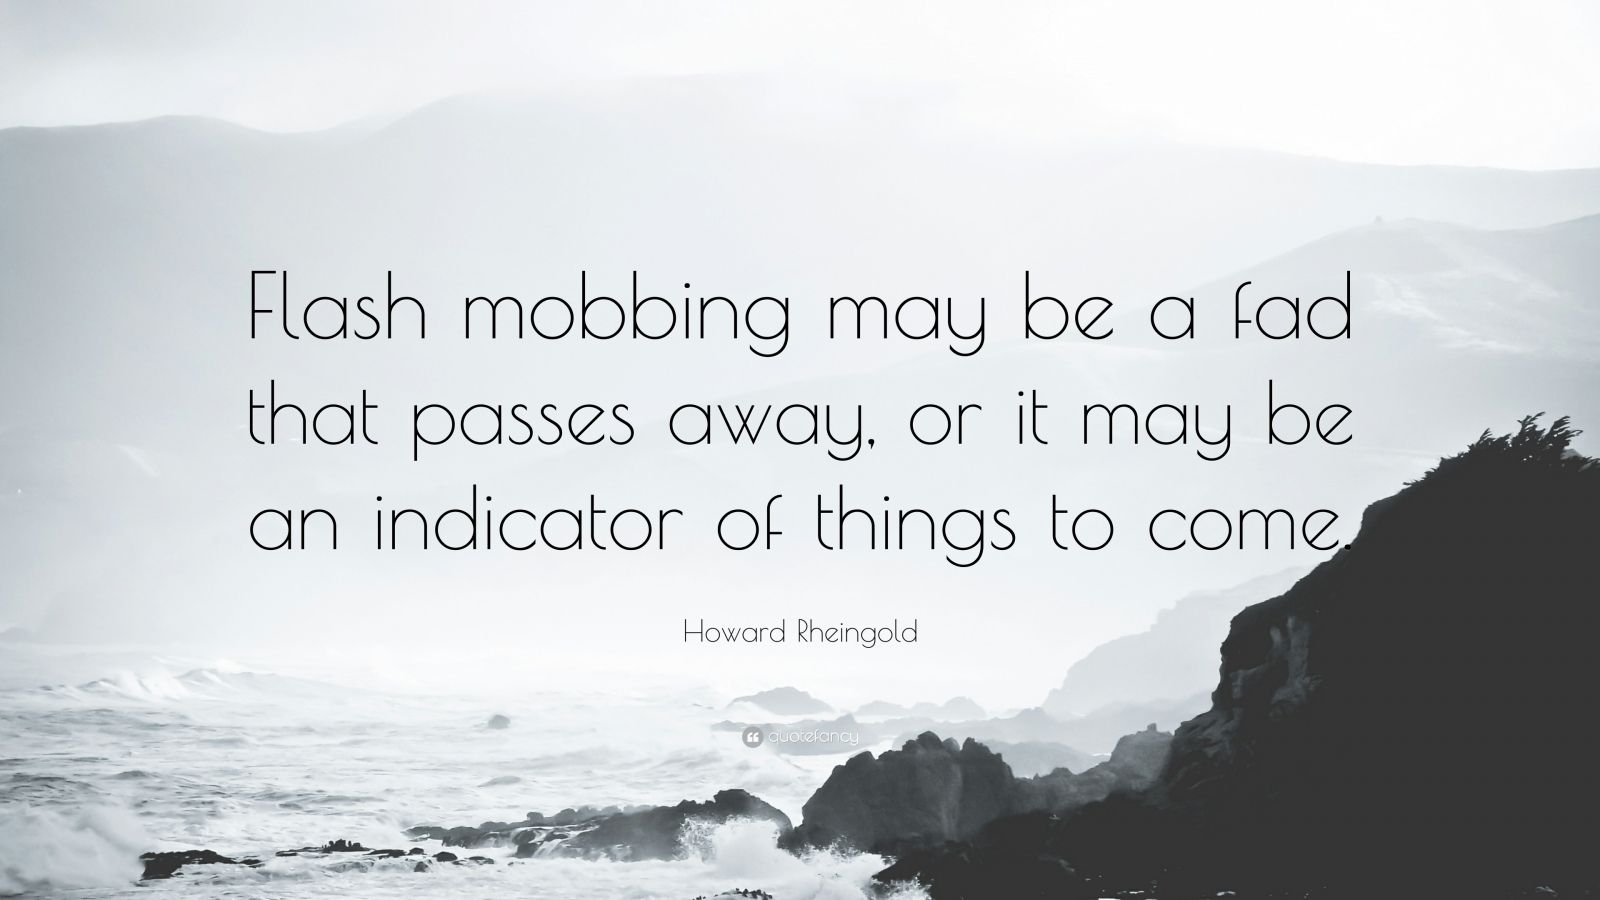 """Howard Rheingold Quote: """"Flash mobbing may be a fad that passes away, or it may be an indicator of things to come."""""""